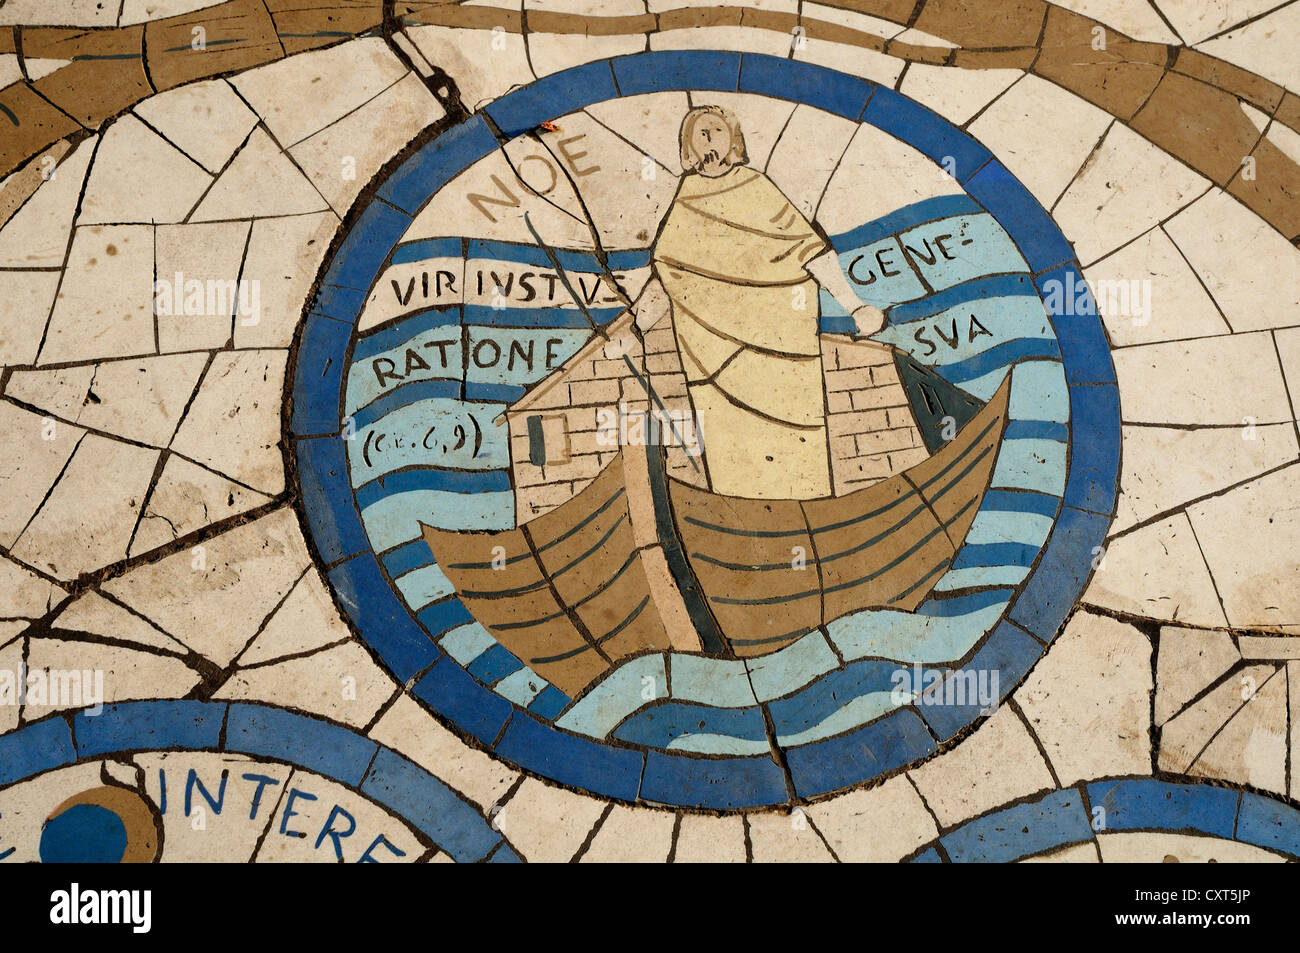 Floor mosaic, Church of the Beatitudes, site of the Sermon on the Mount, Sea of Galilee, Israel, Middle East Stock Photo